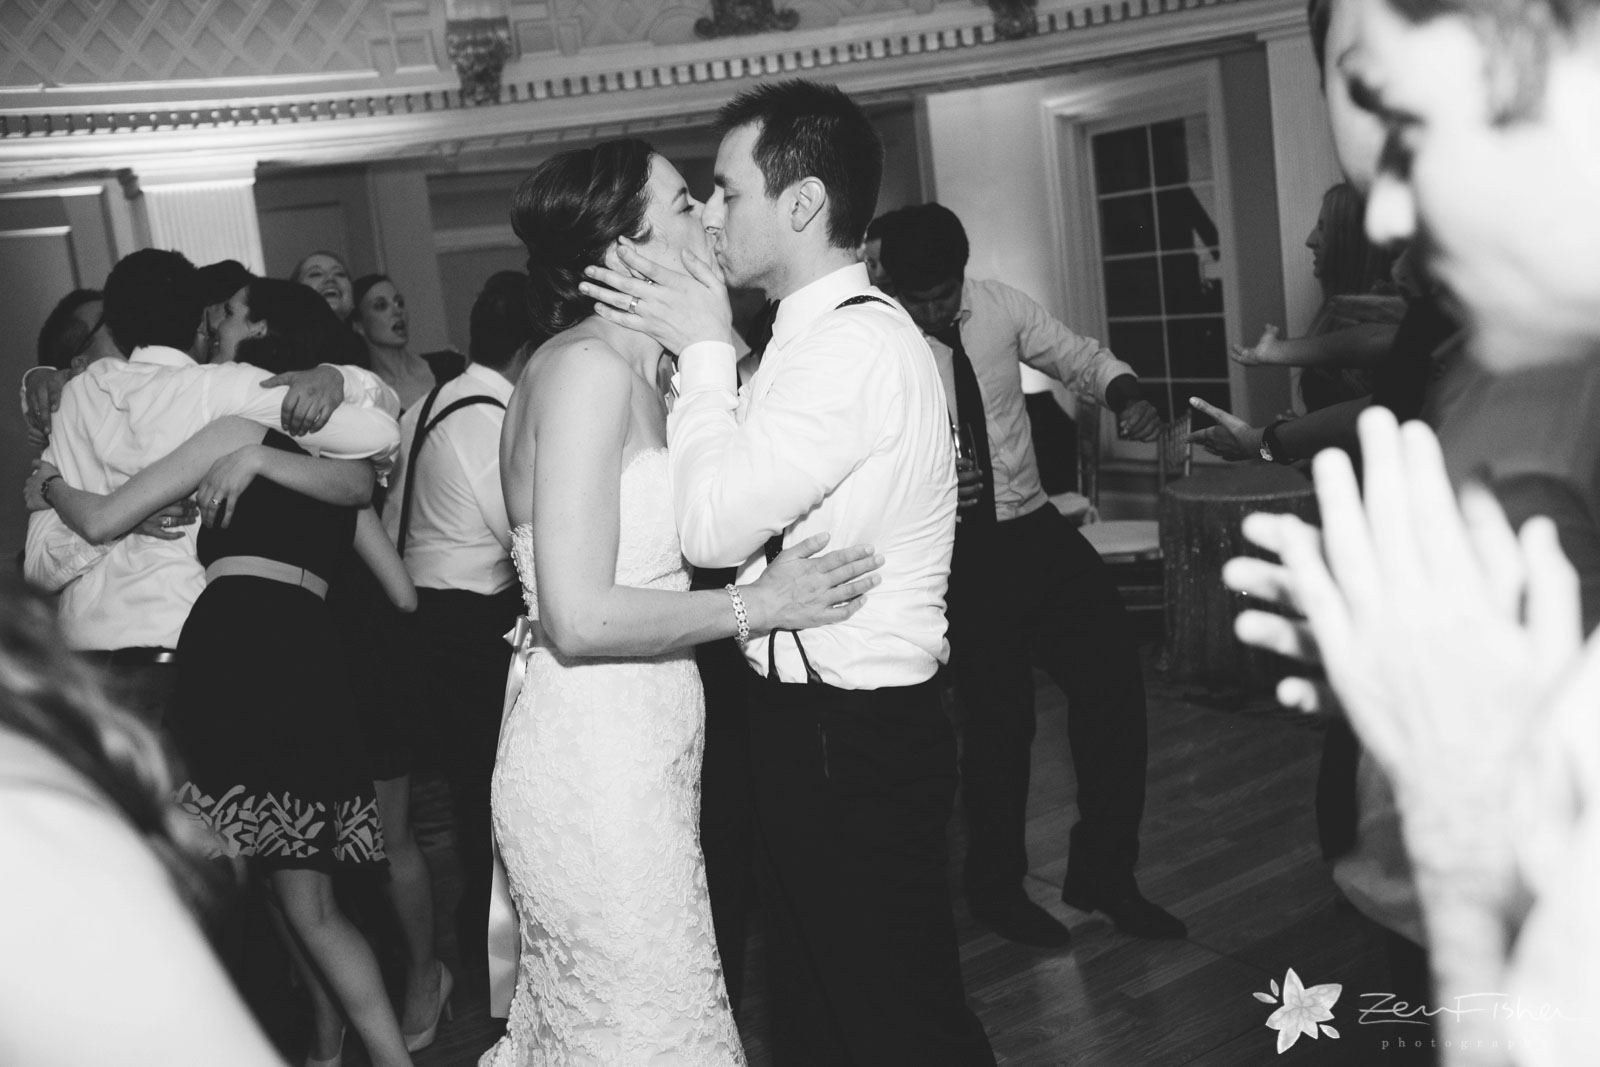 Bride and groom hold each other close and kissing on the dance floor, in black and white.